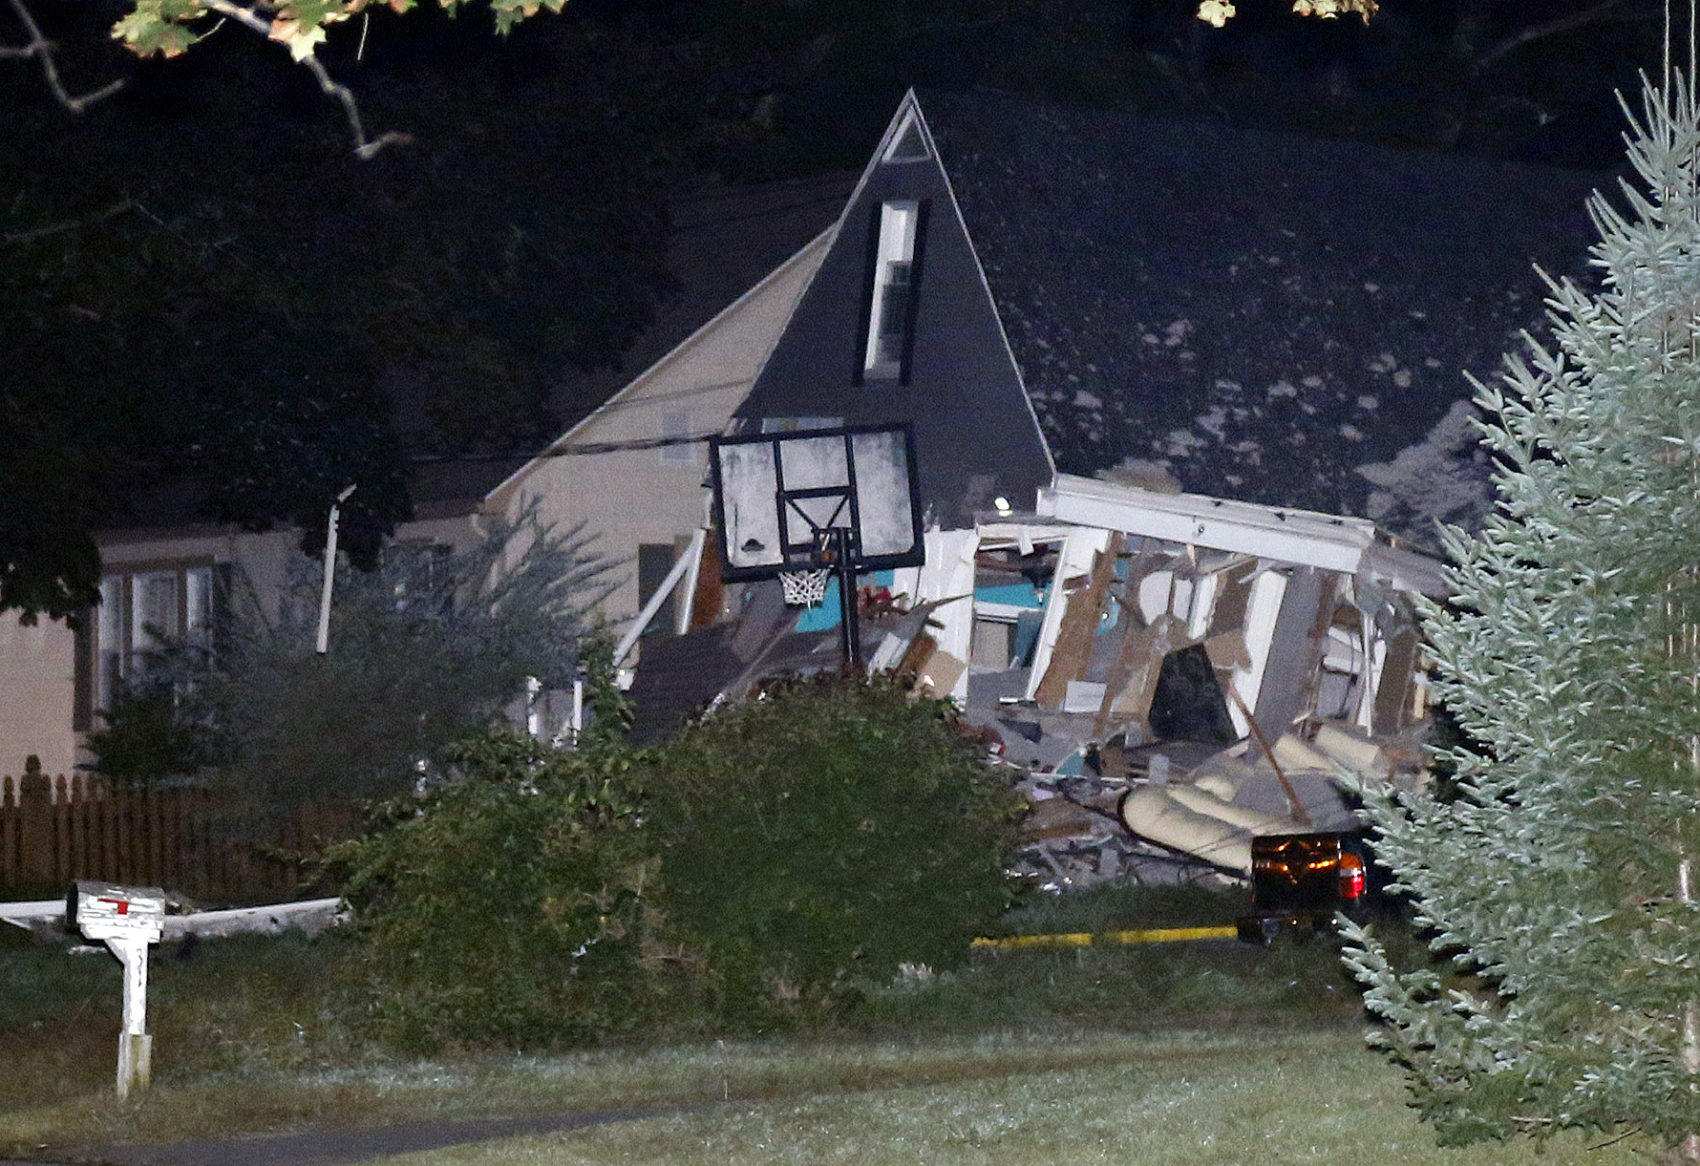 A house is destroyed in Lawrence, Massachusetts, on Sept. 13, 2018. A problem with a gas line that feeds homes in several communities north of Boston triggered a series of gas explosions and fires. (AP Photo/Mary Schwalm)